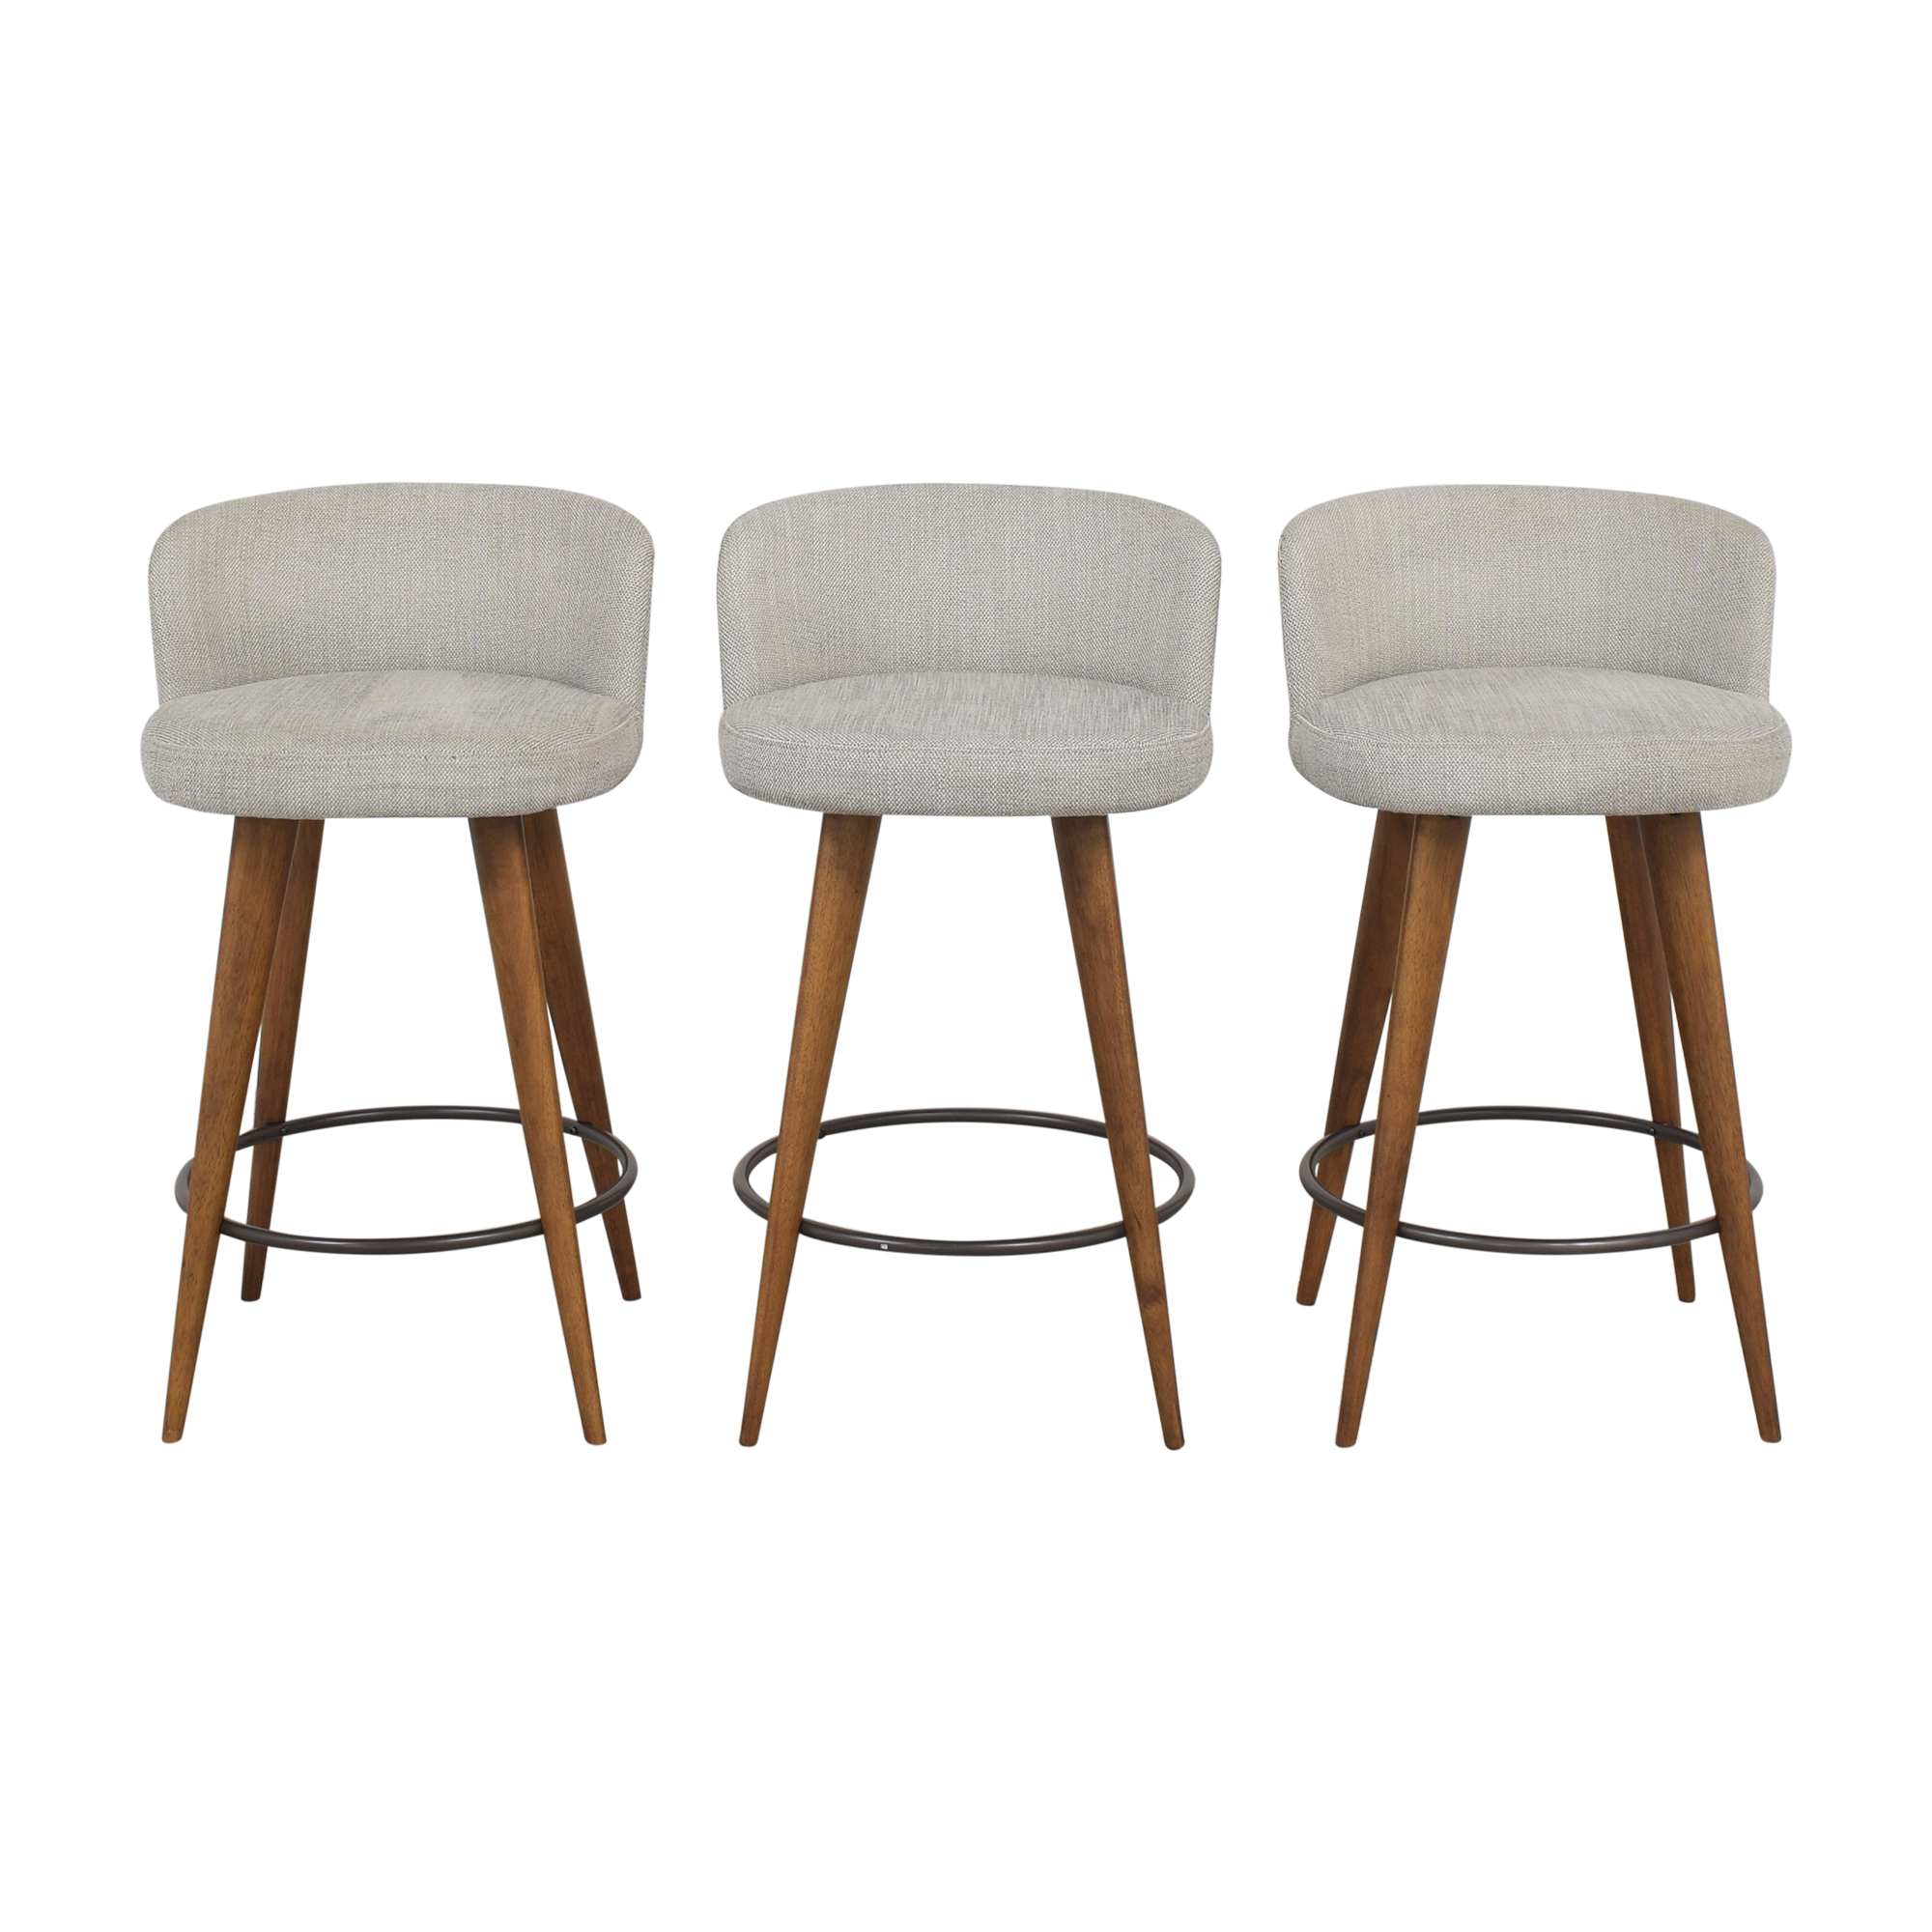 buy West Elm Abrazo Upholstered Counter Stools West Elm Stools